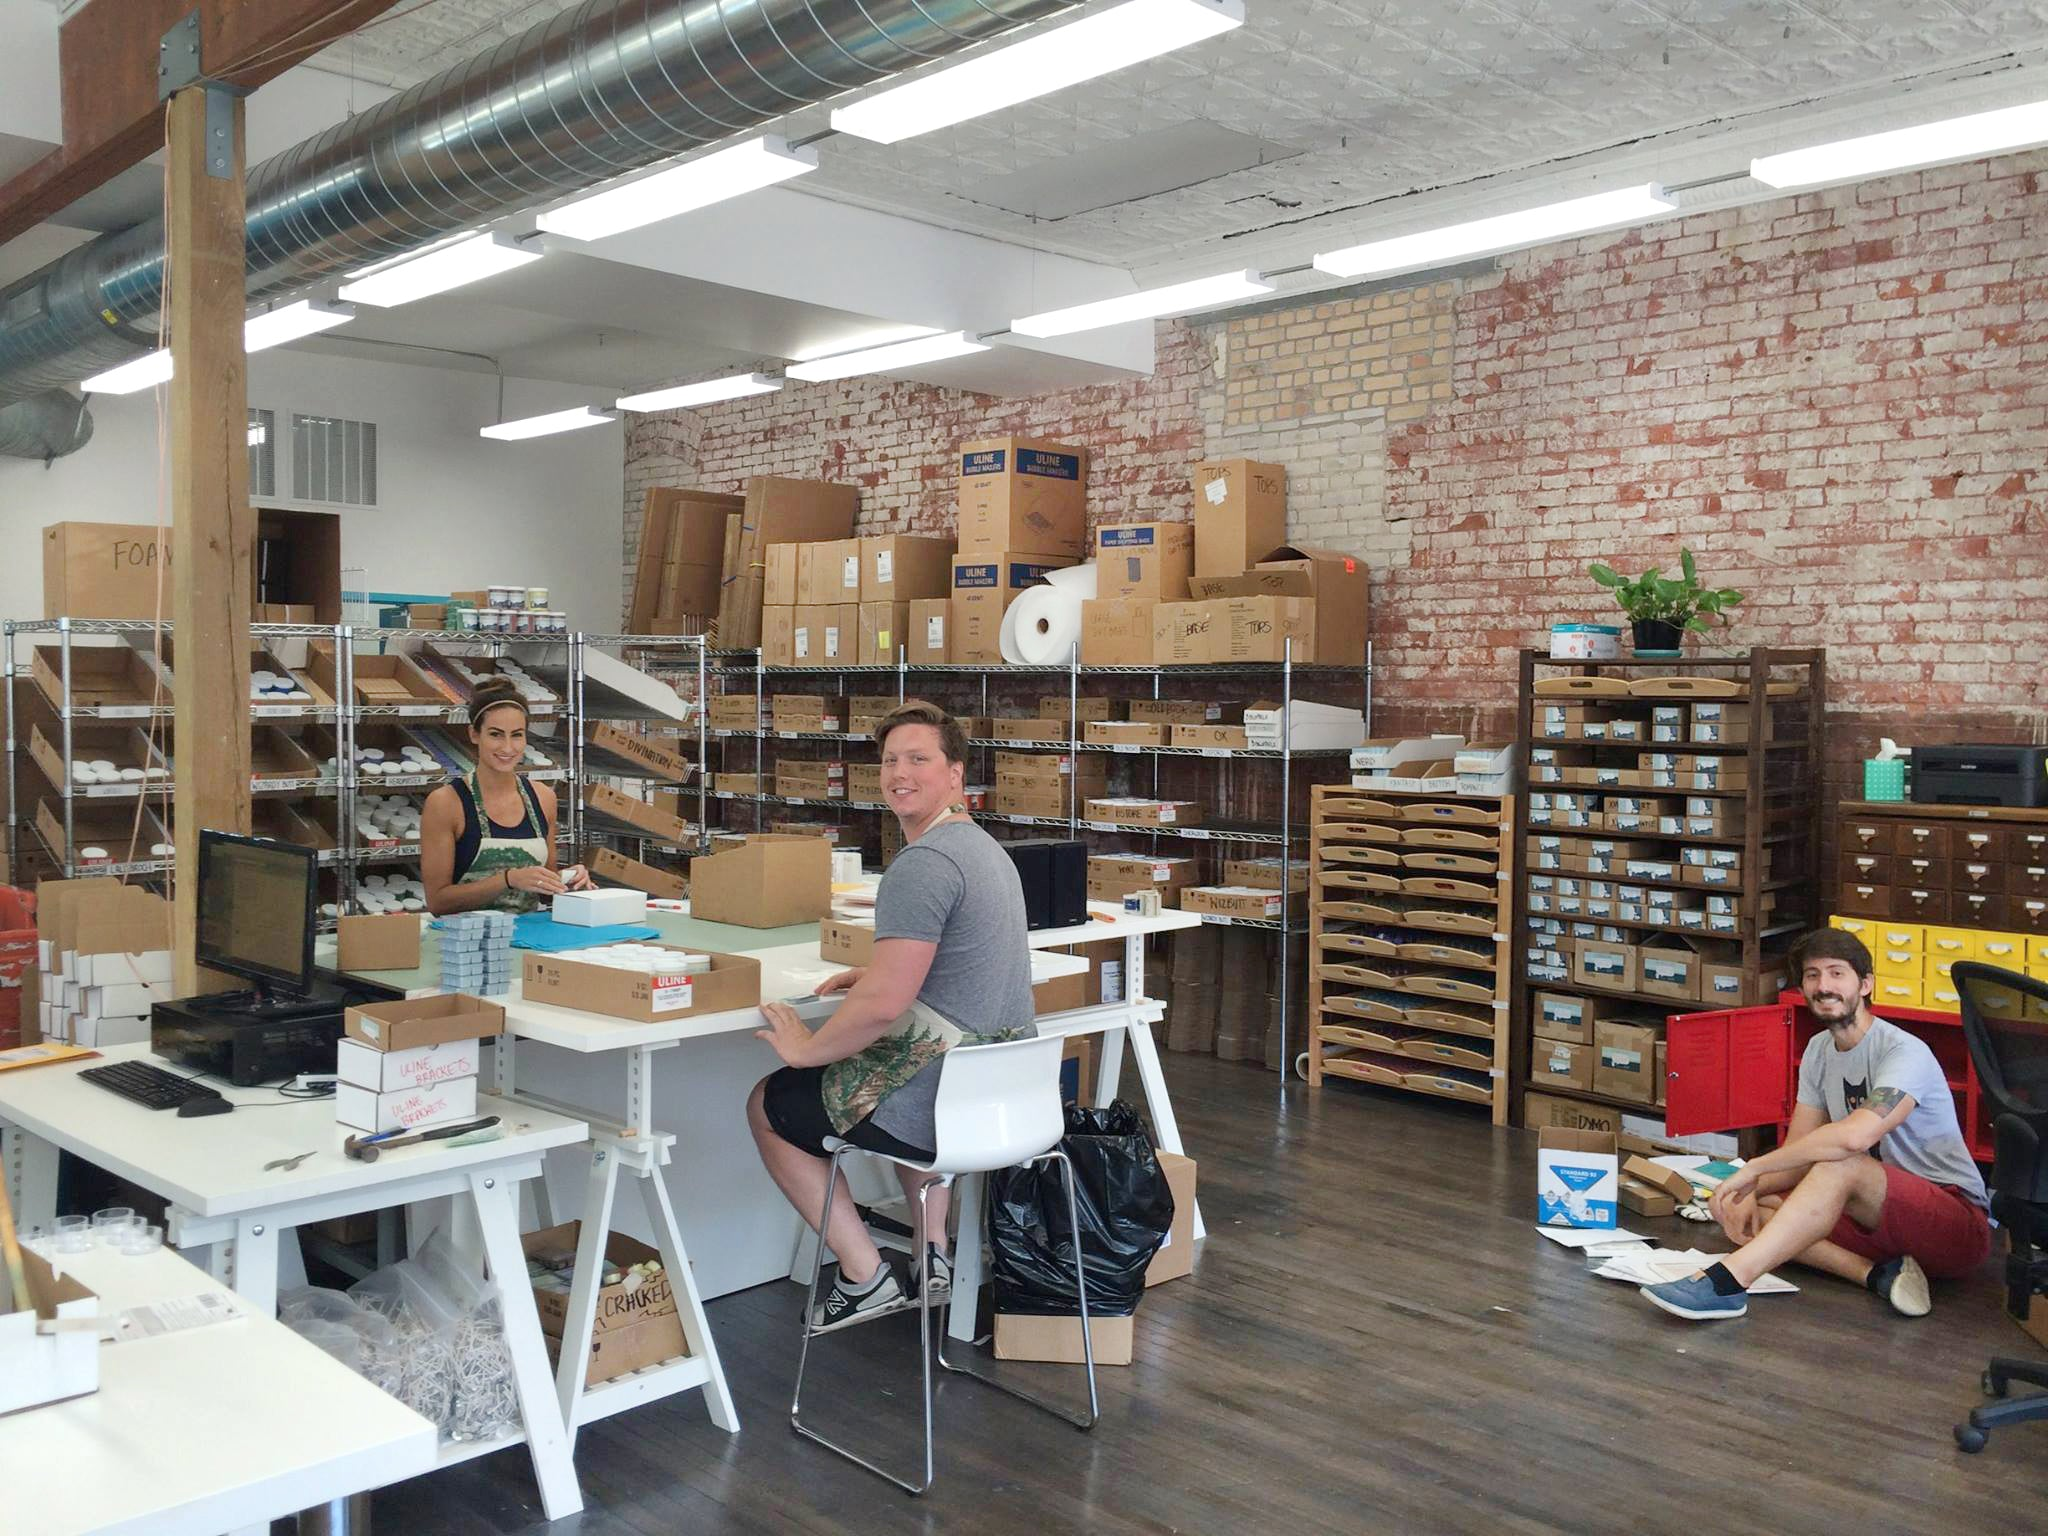 Inside Frostbeard Studio with three employees working and smiling